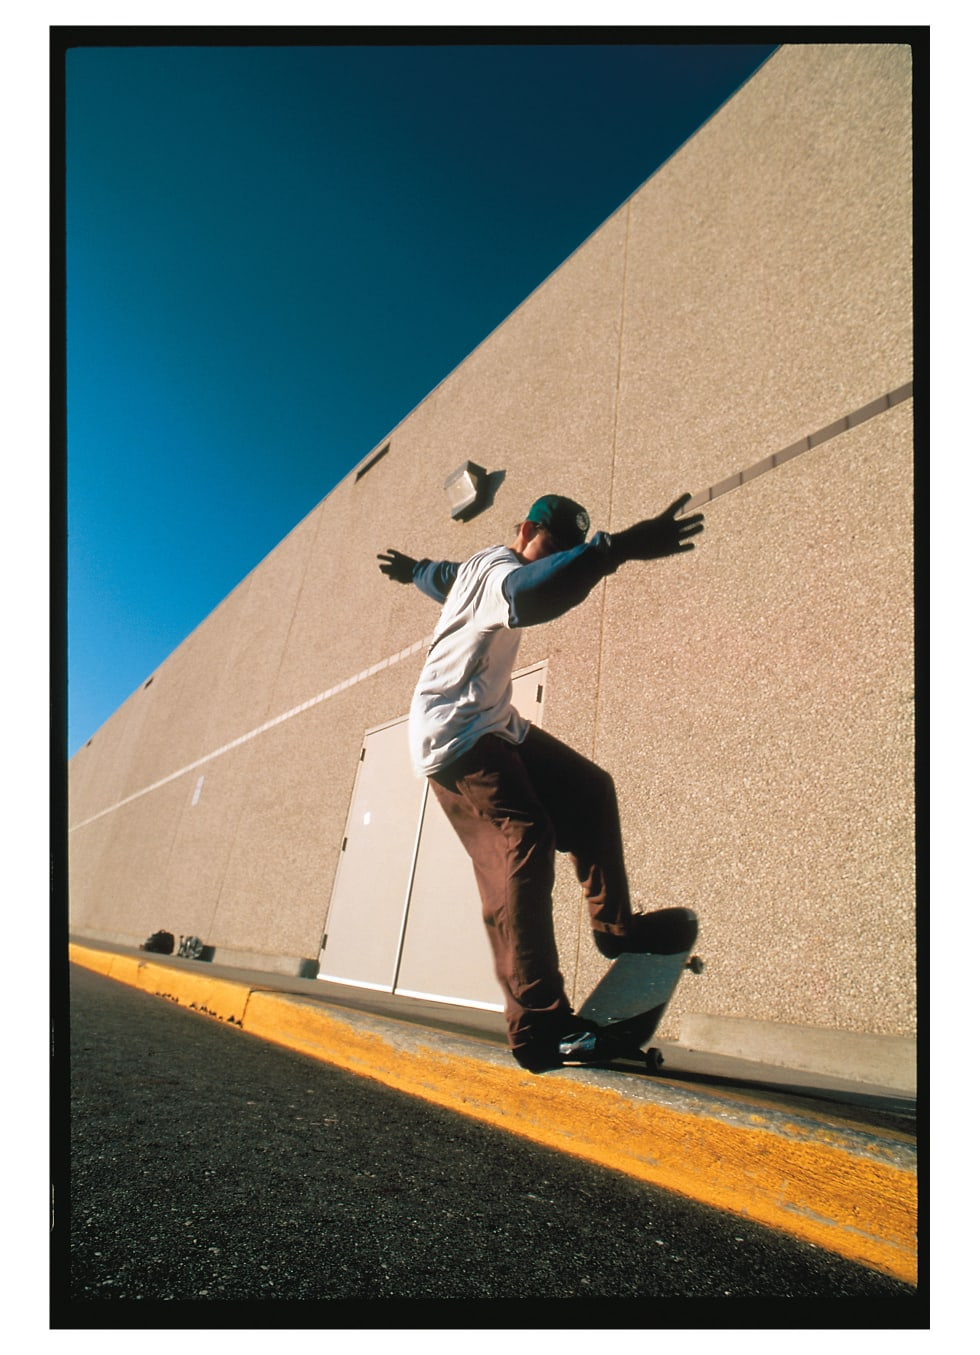 Mike Blabac. A Life in Photography. Editorial 18